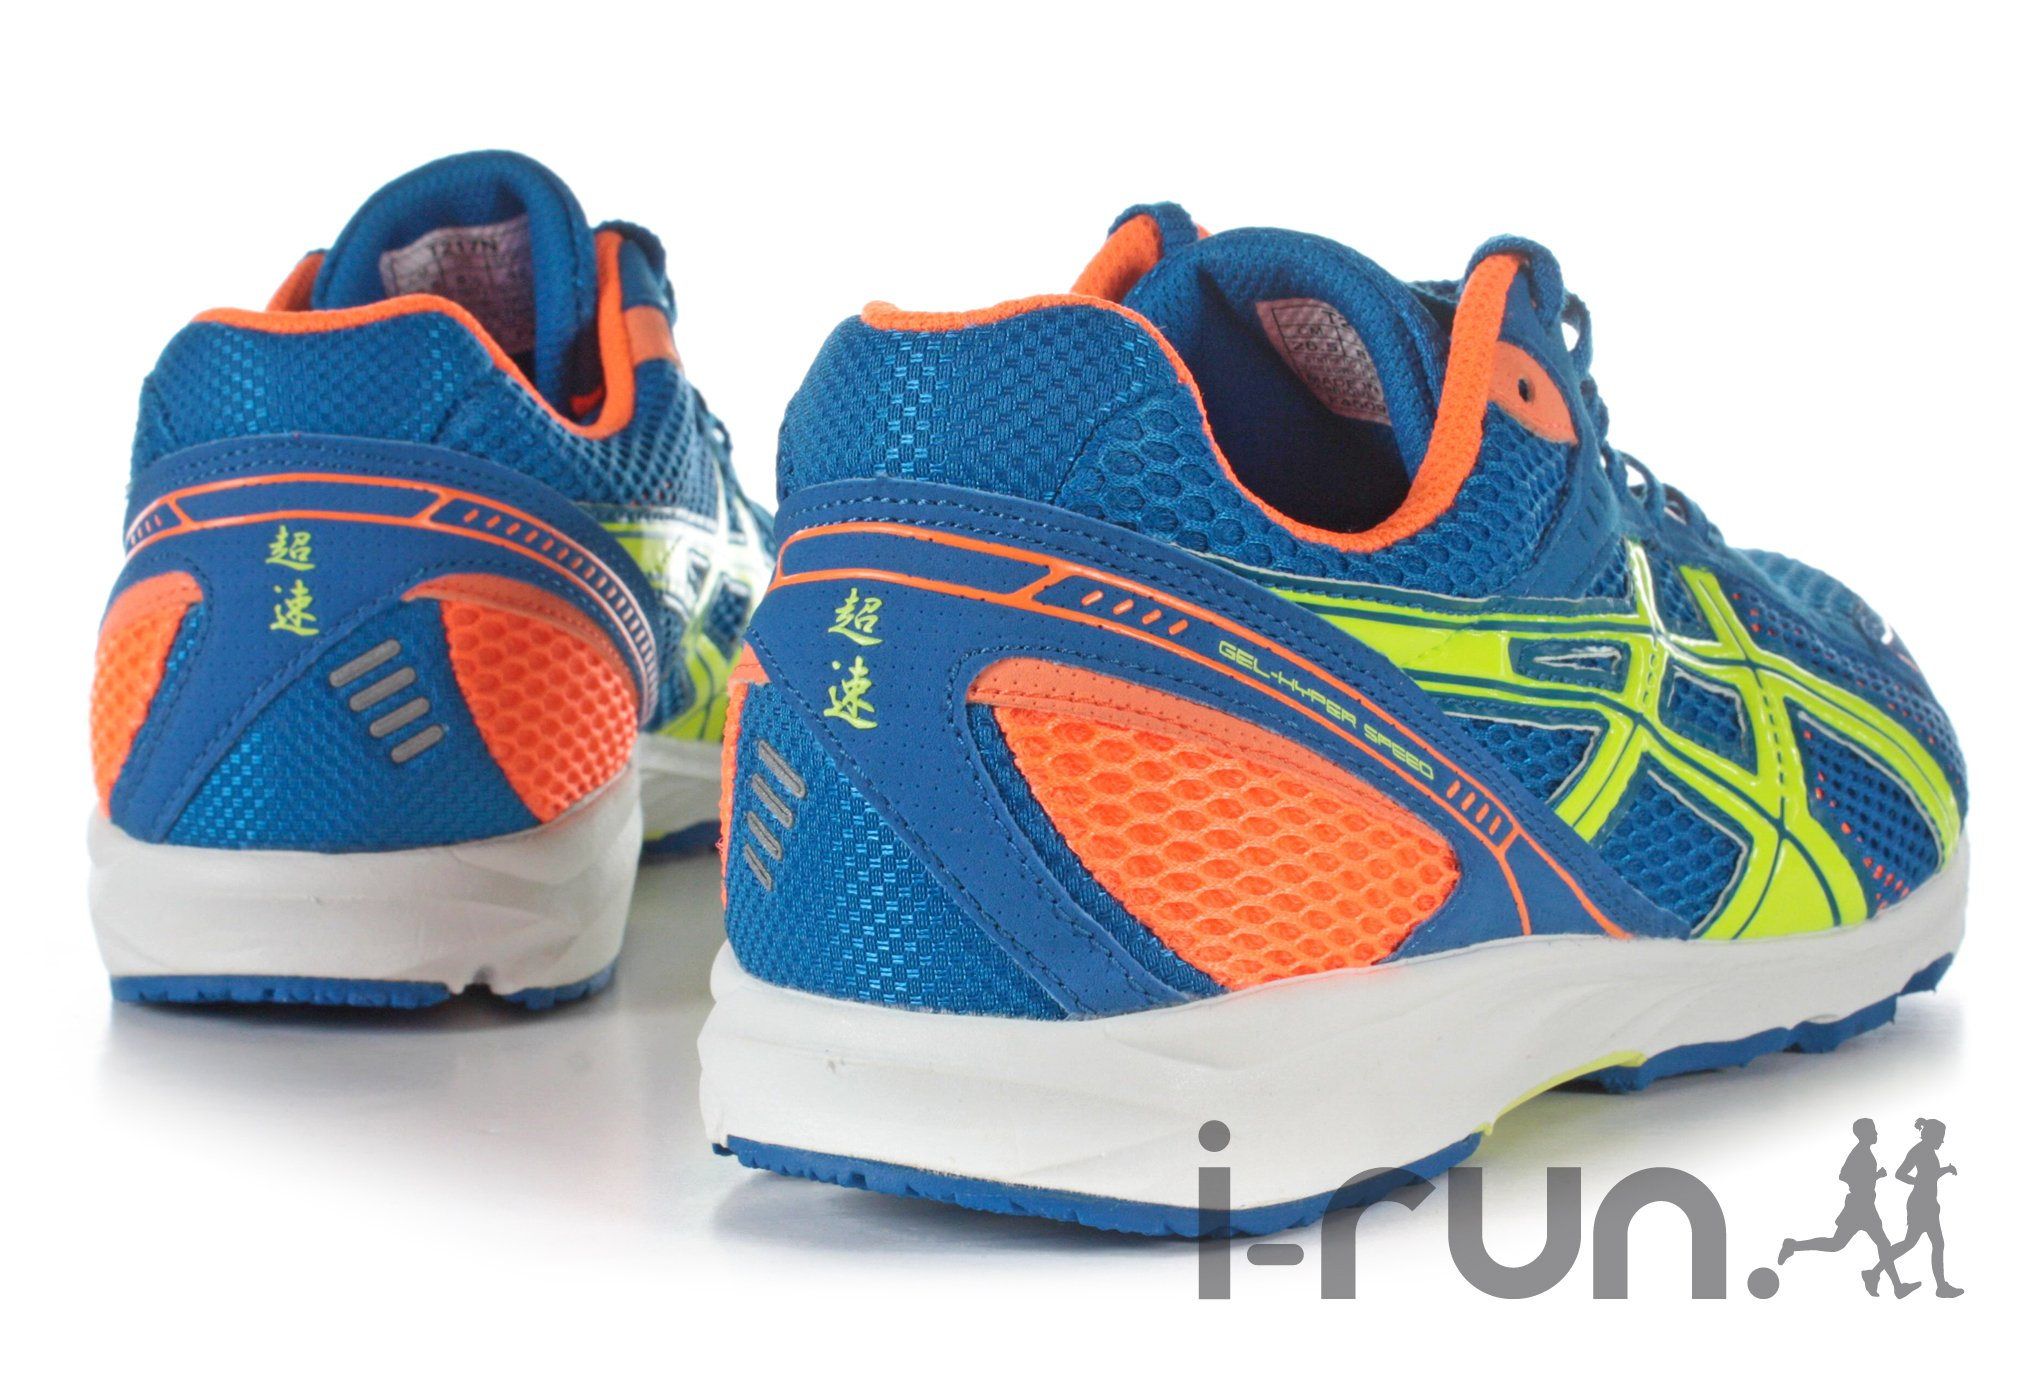 best asics shoes 2016 tunisie annonce immobiliere tunisie 676911